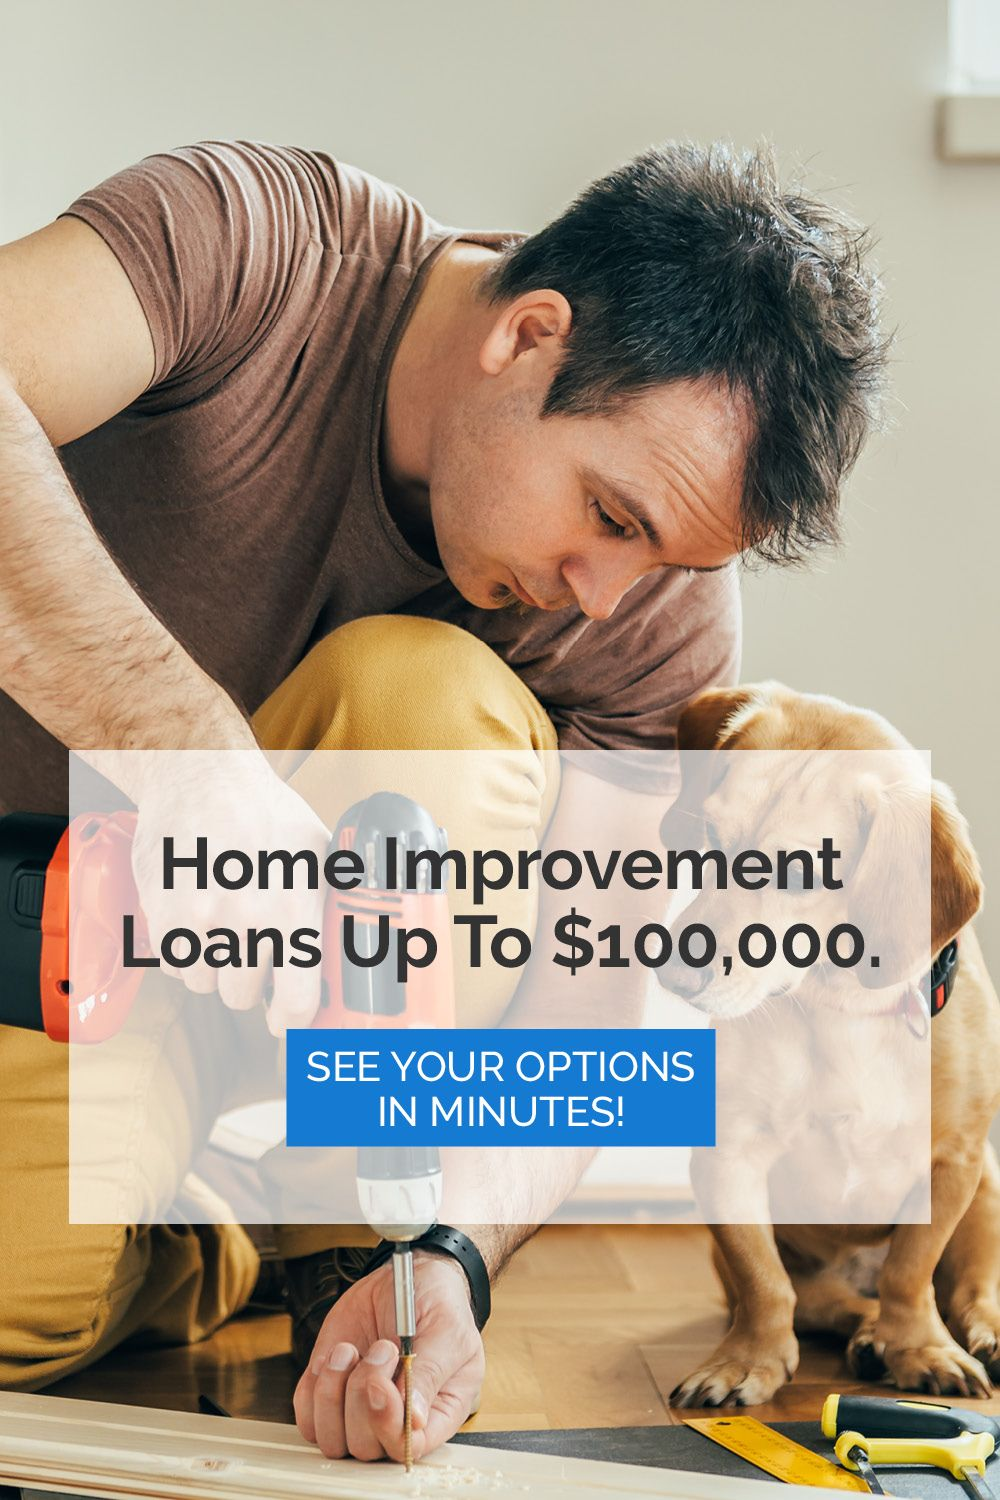 Loans Starting At 5k For Those With Good Credit Personal Loans Home Improvement Loans Loan